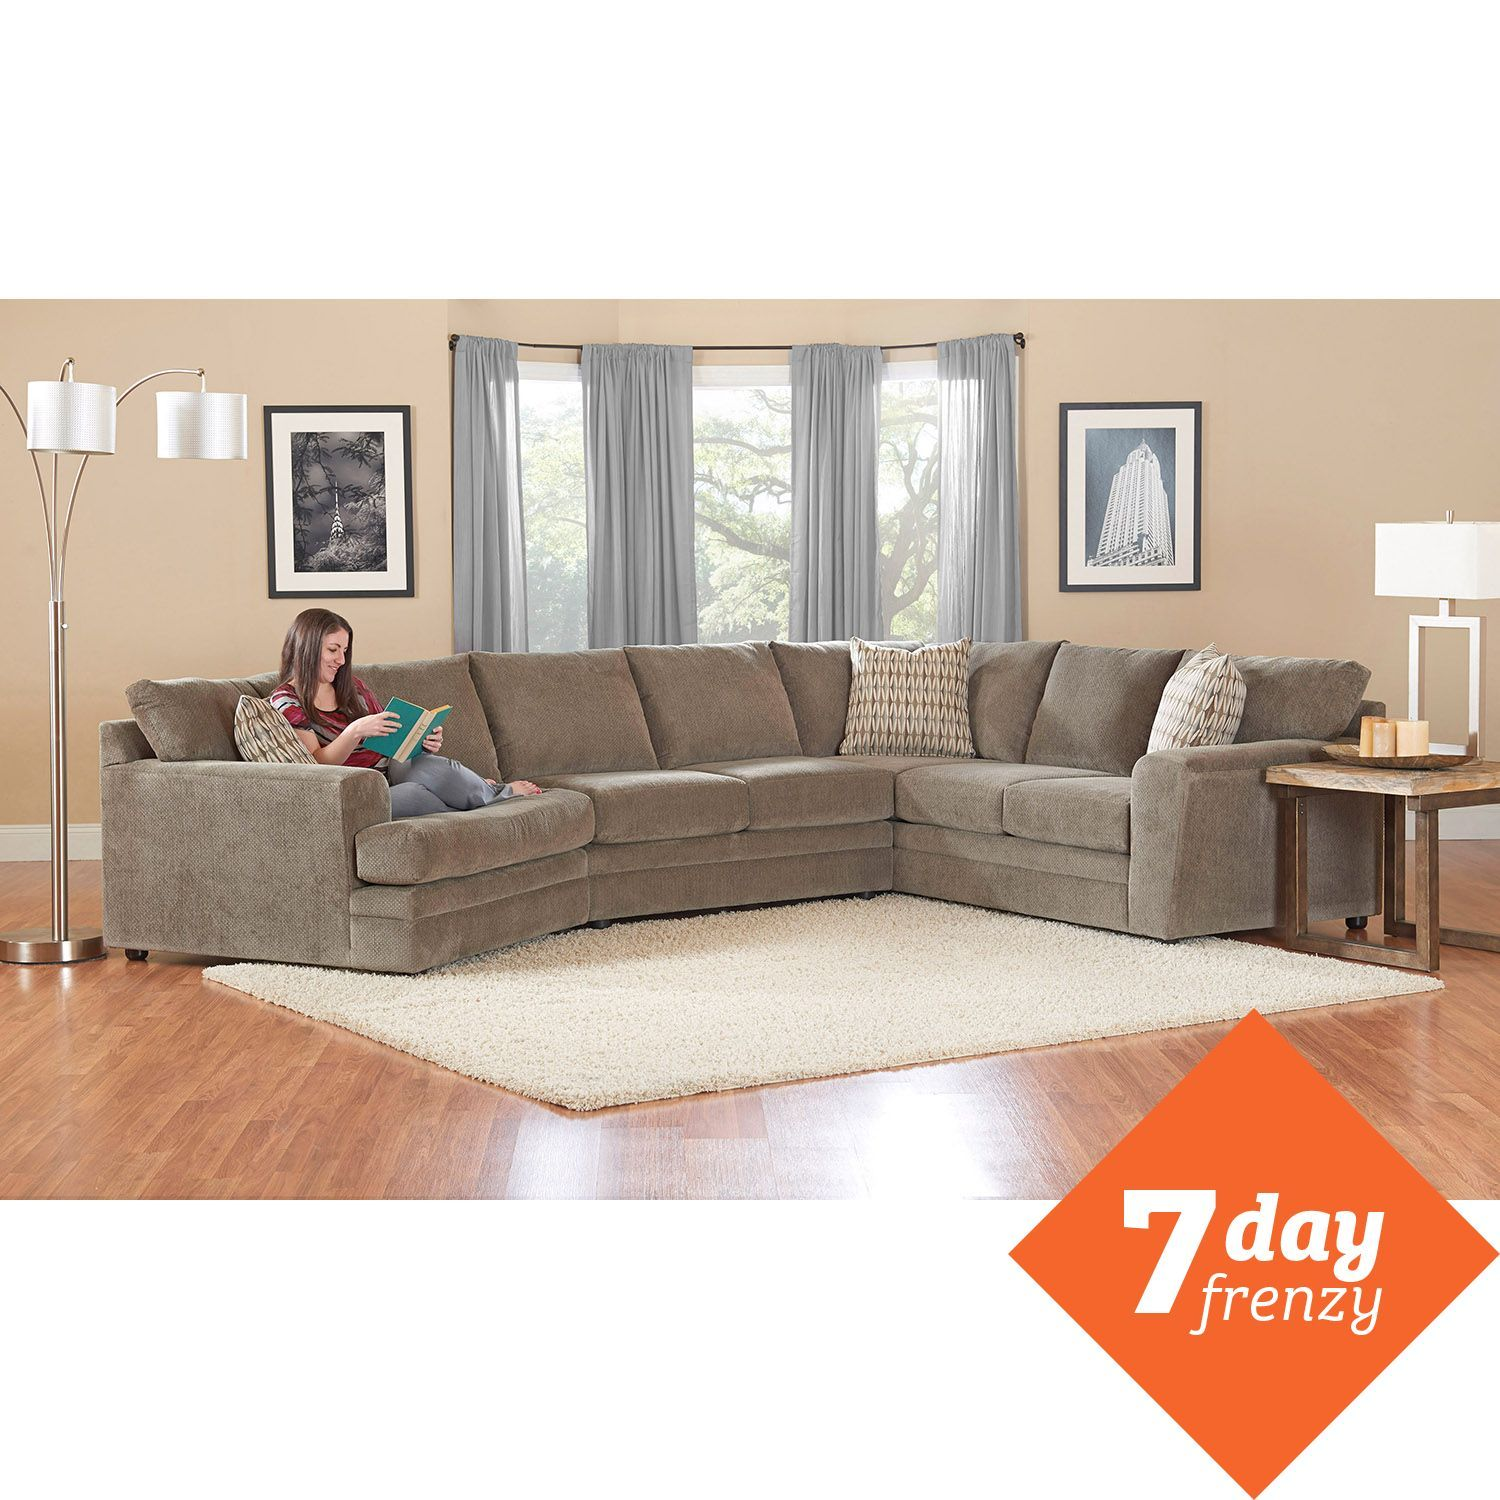 $1499 Prestige Ashburn Sectional Sofa Home Decor